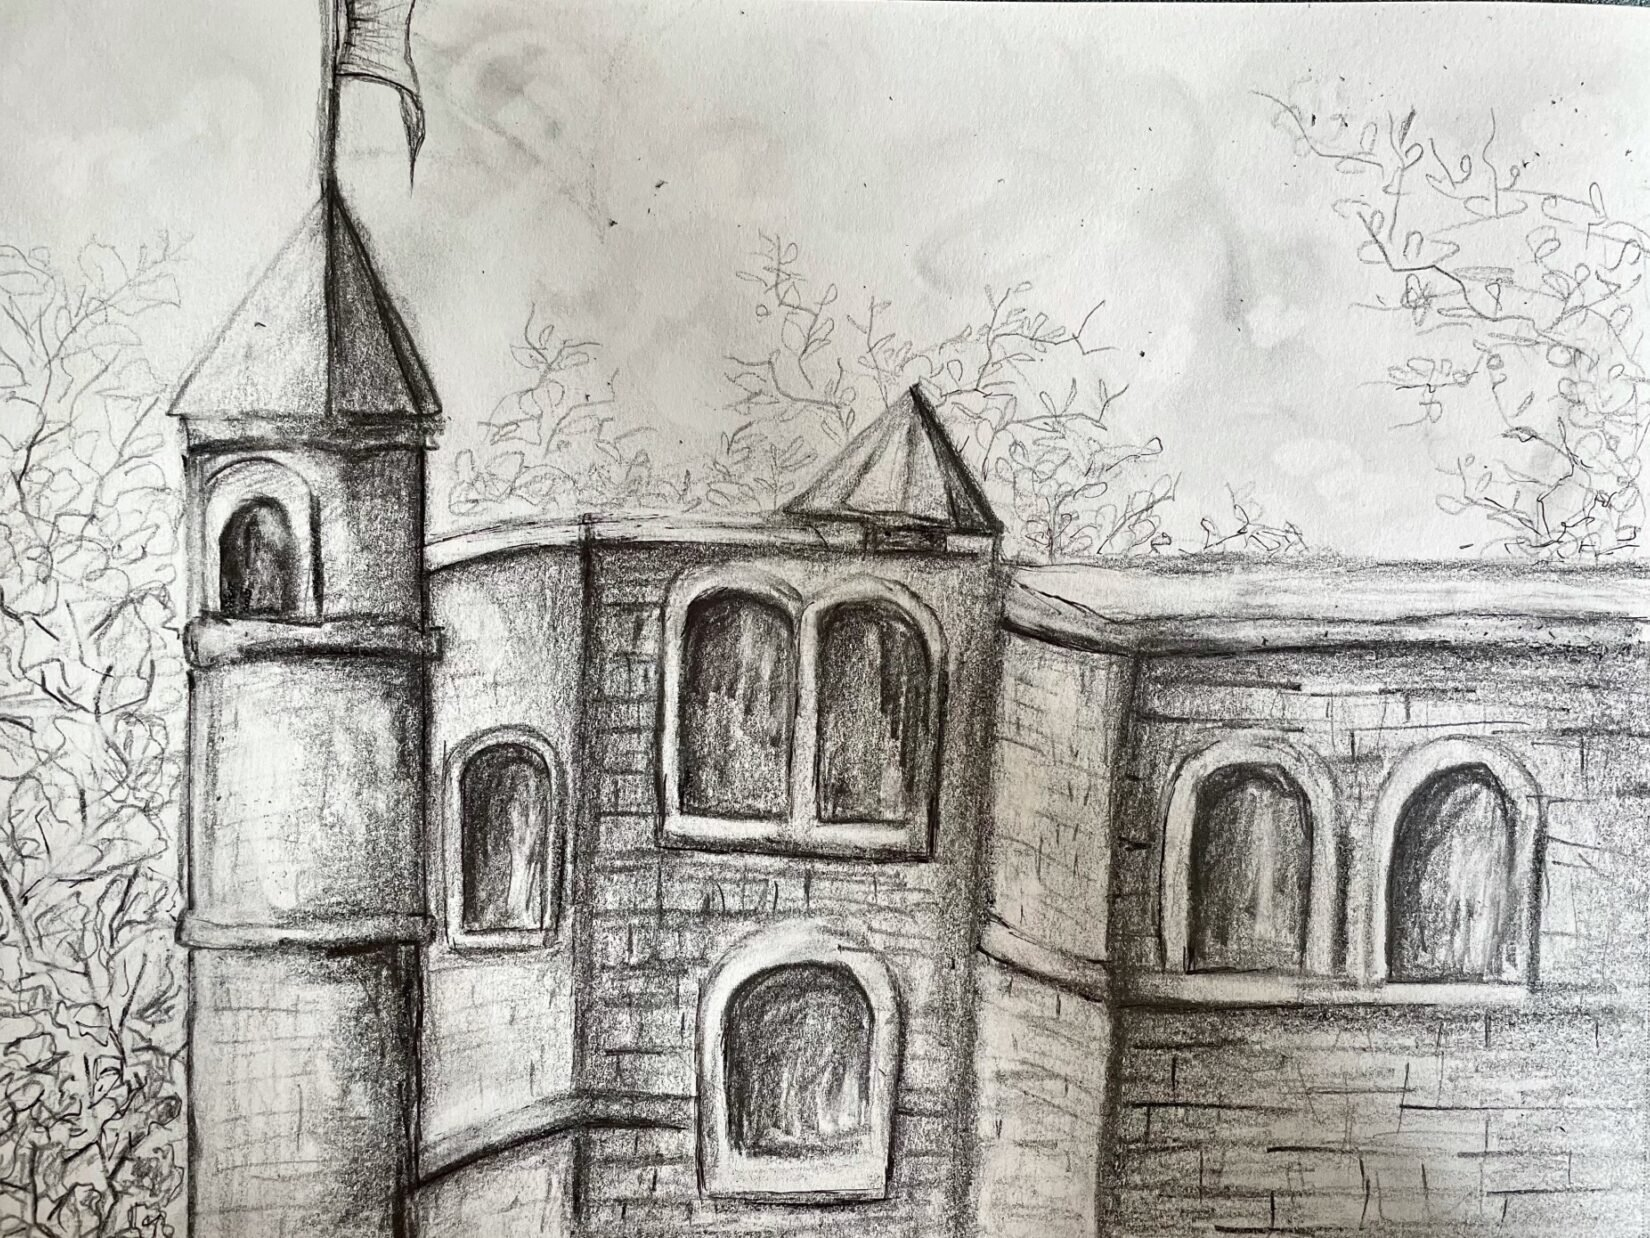 The towers of the Castle are prominent in this pencil rendering